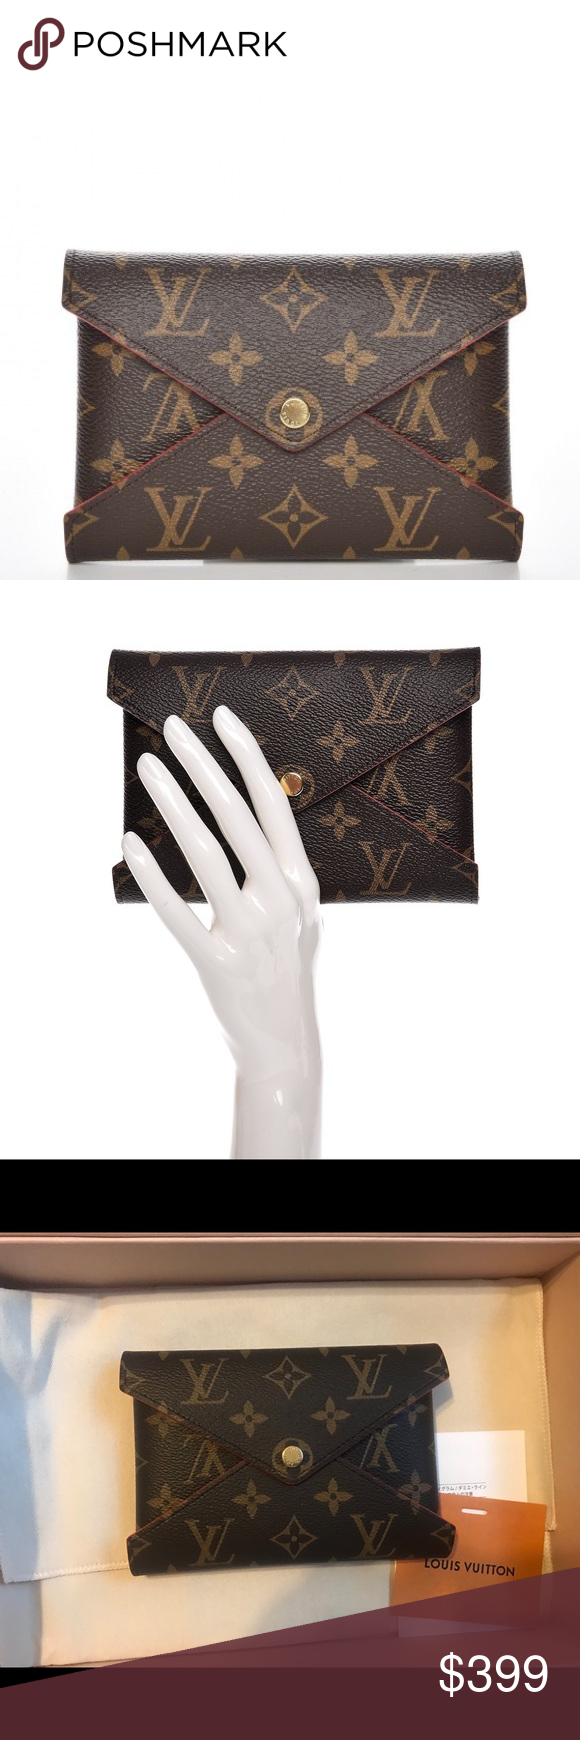 446f6717fe Authentic Louis Vuitton NEW medium kirigami Brand new. Never been used. -  Medium pouch for passport, cards or keys. - Appx Size: L6 x H4.5 x D0.1  inches ...